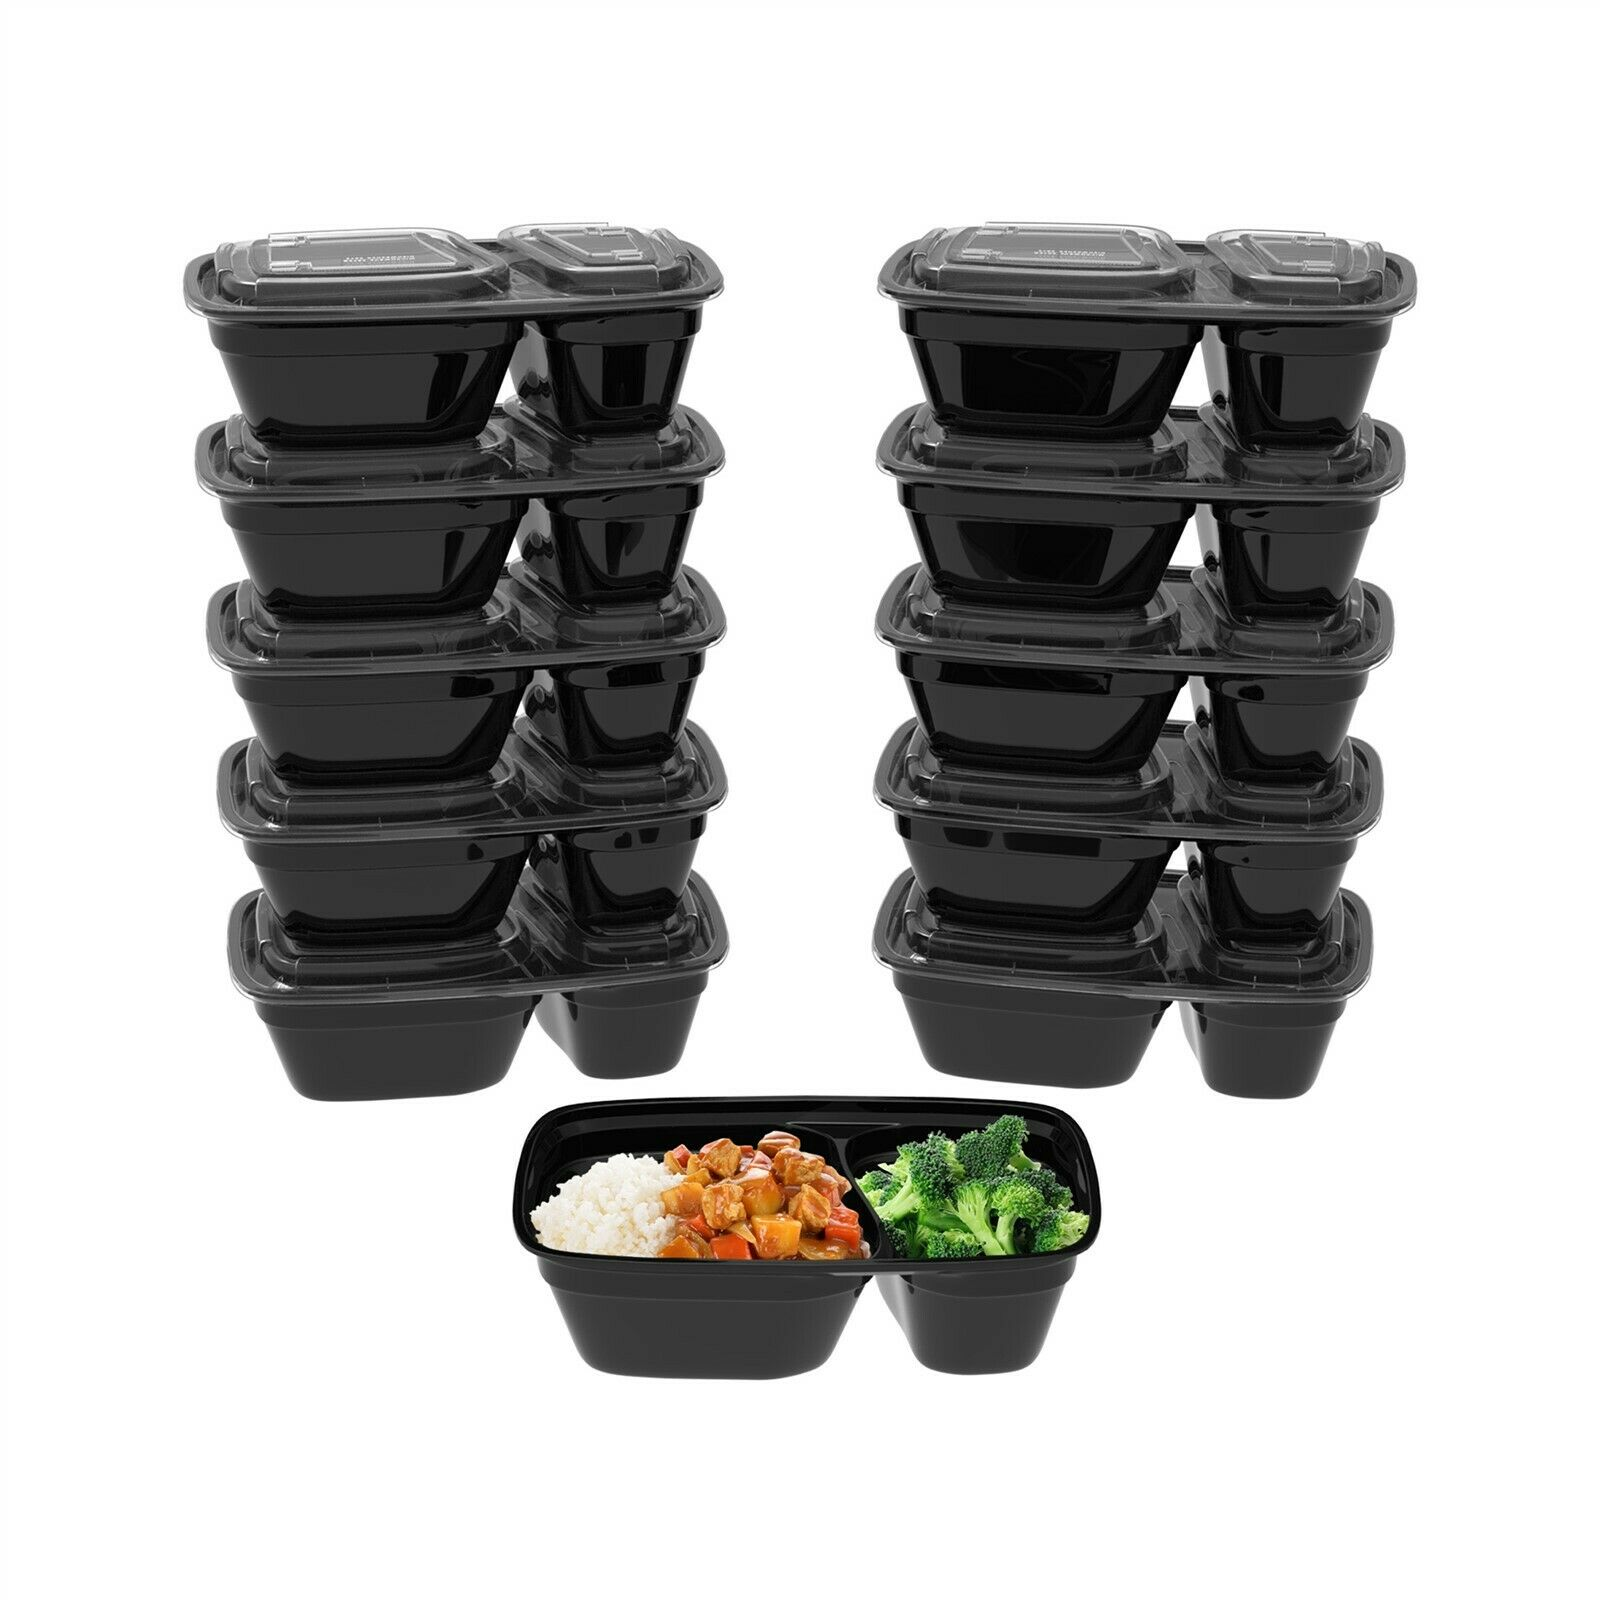 40 Meal Prep To Go Food Containers with Lids Microwave Lunch BPA Free 28 Oz